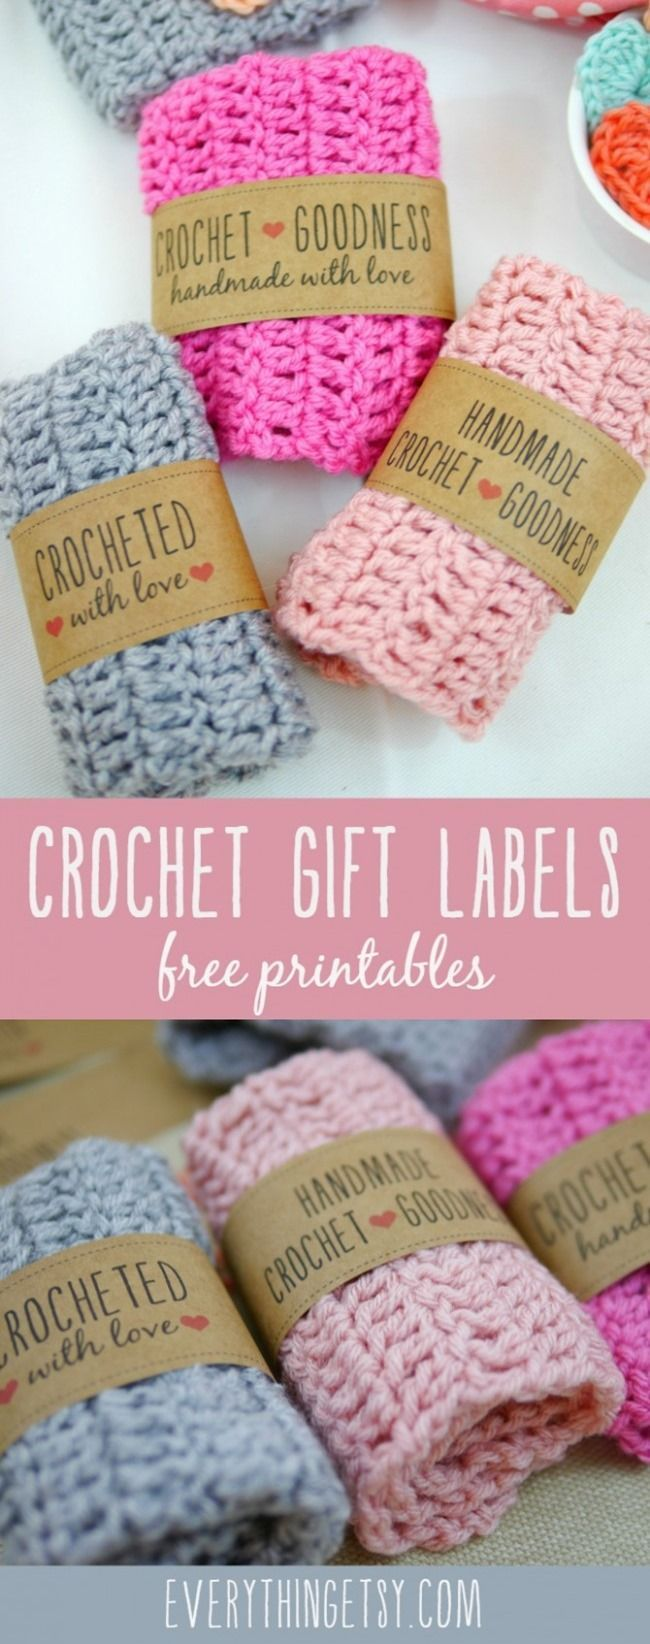 Free Printable Crochet Gift Labels - http://EverythingEtsy.com